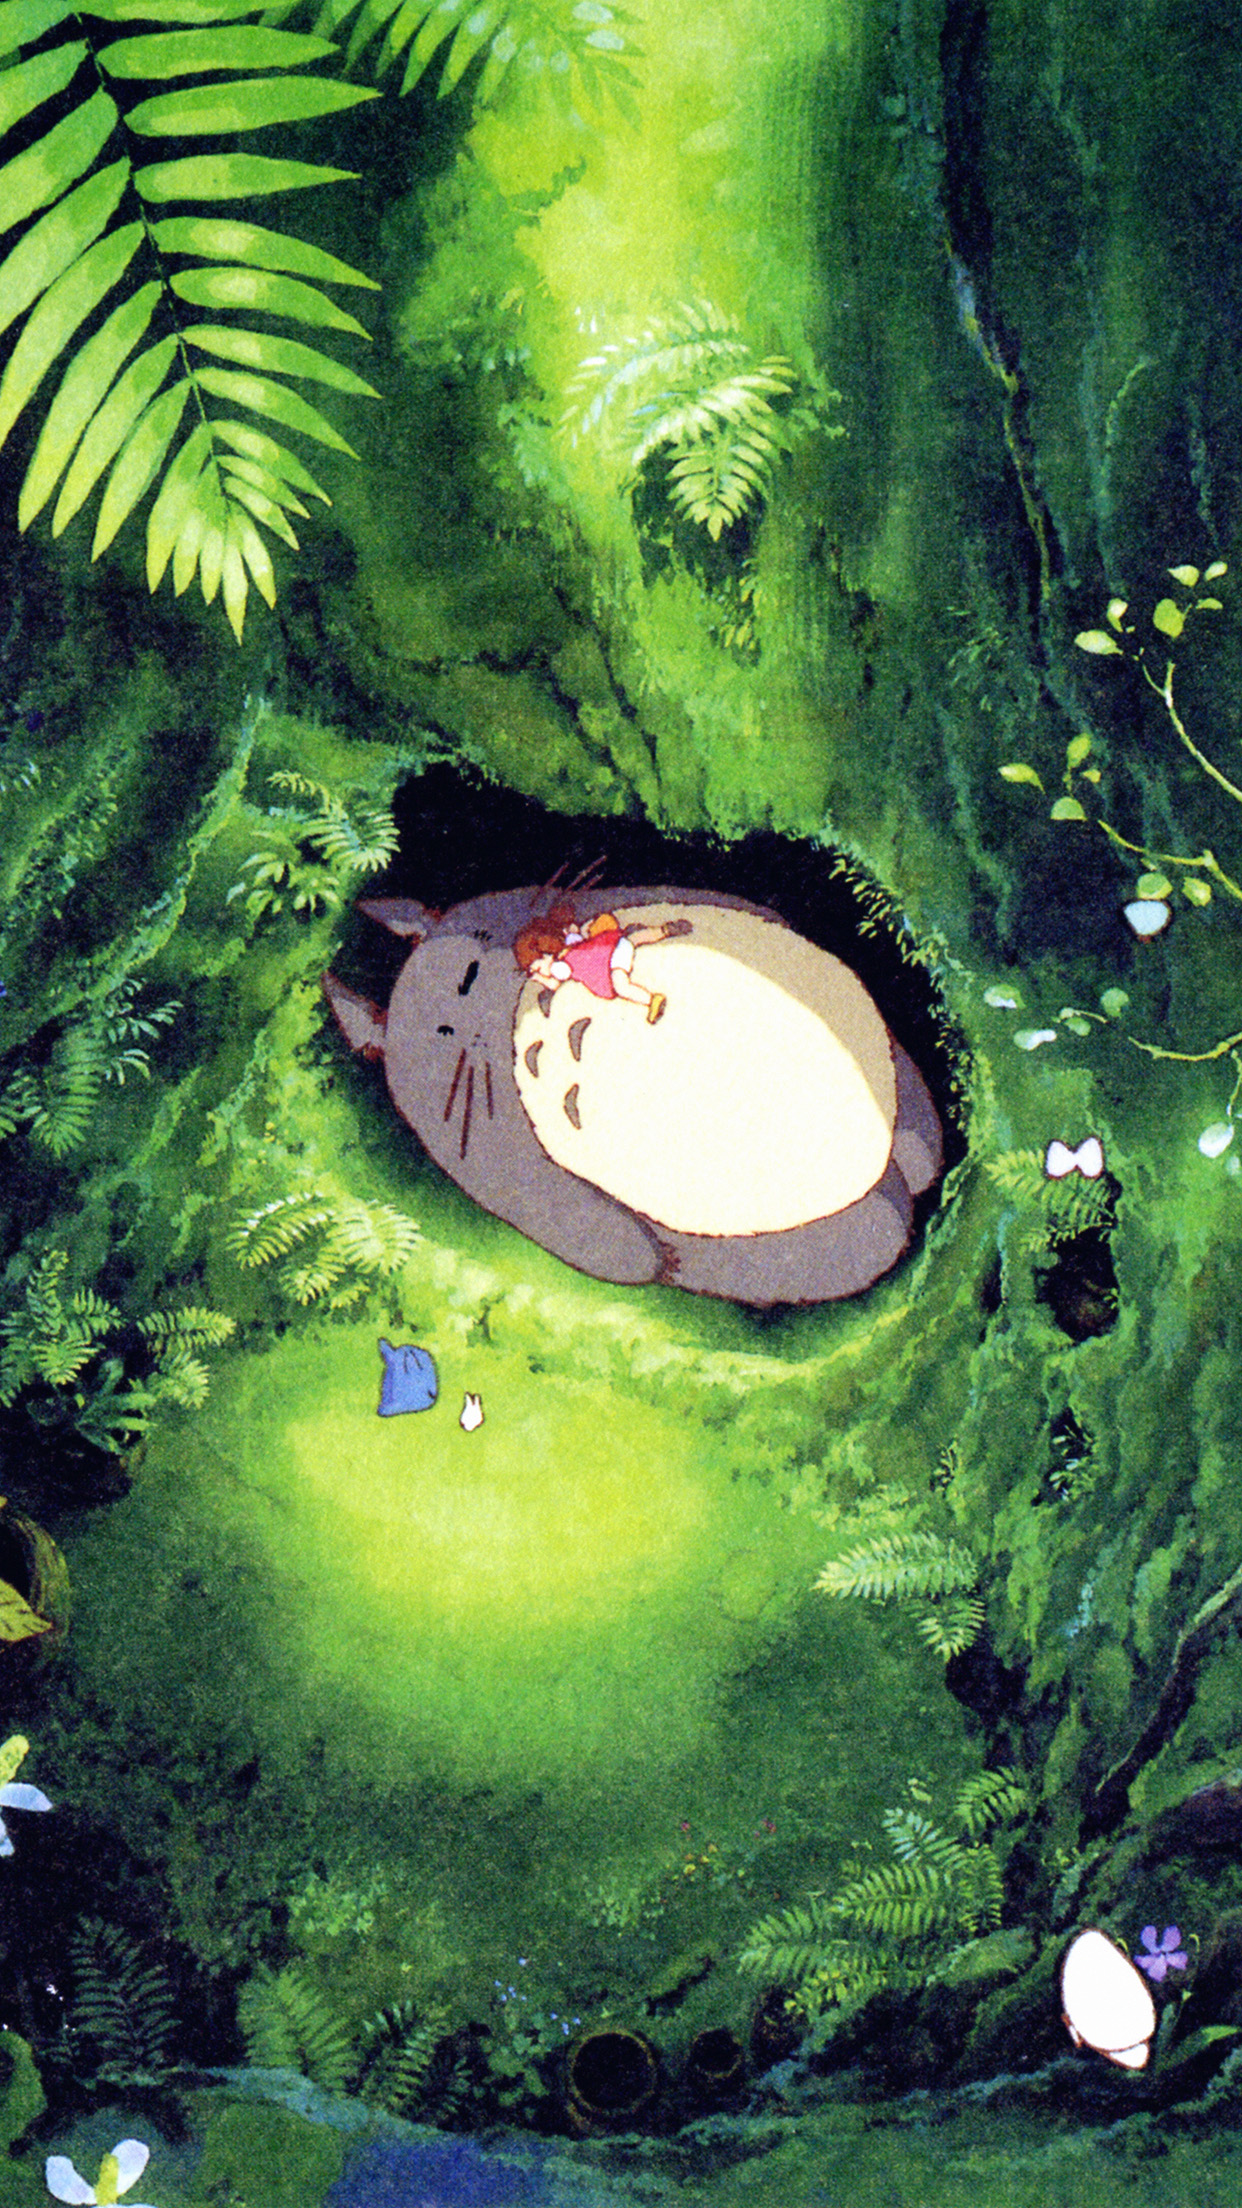 Japan Totoro Art Green Anime Illustration Android wallpaper